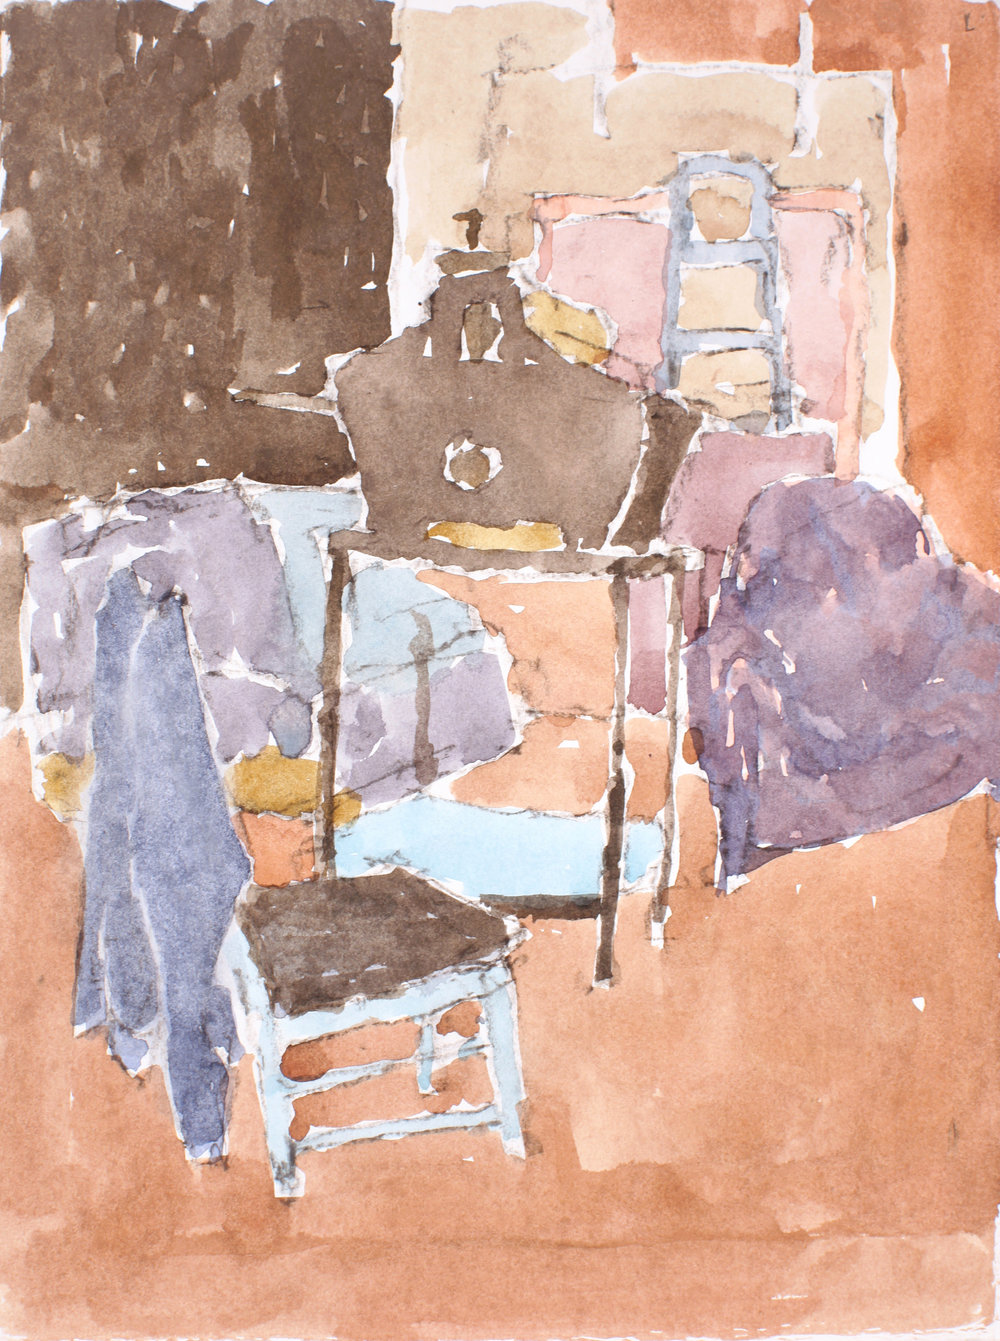 1996_Studio_Interior_watercolour_and_pencil_on_paper_15x11in_WPF652.jpg